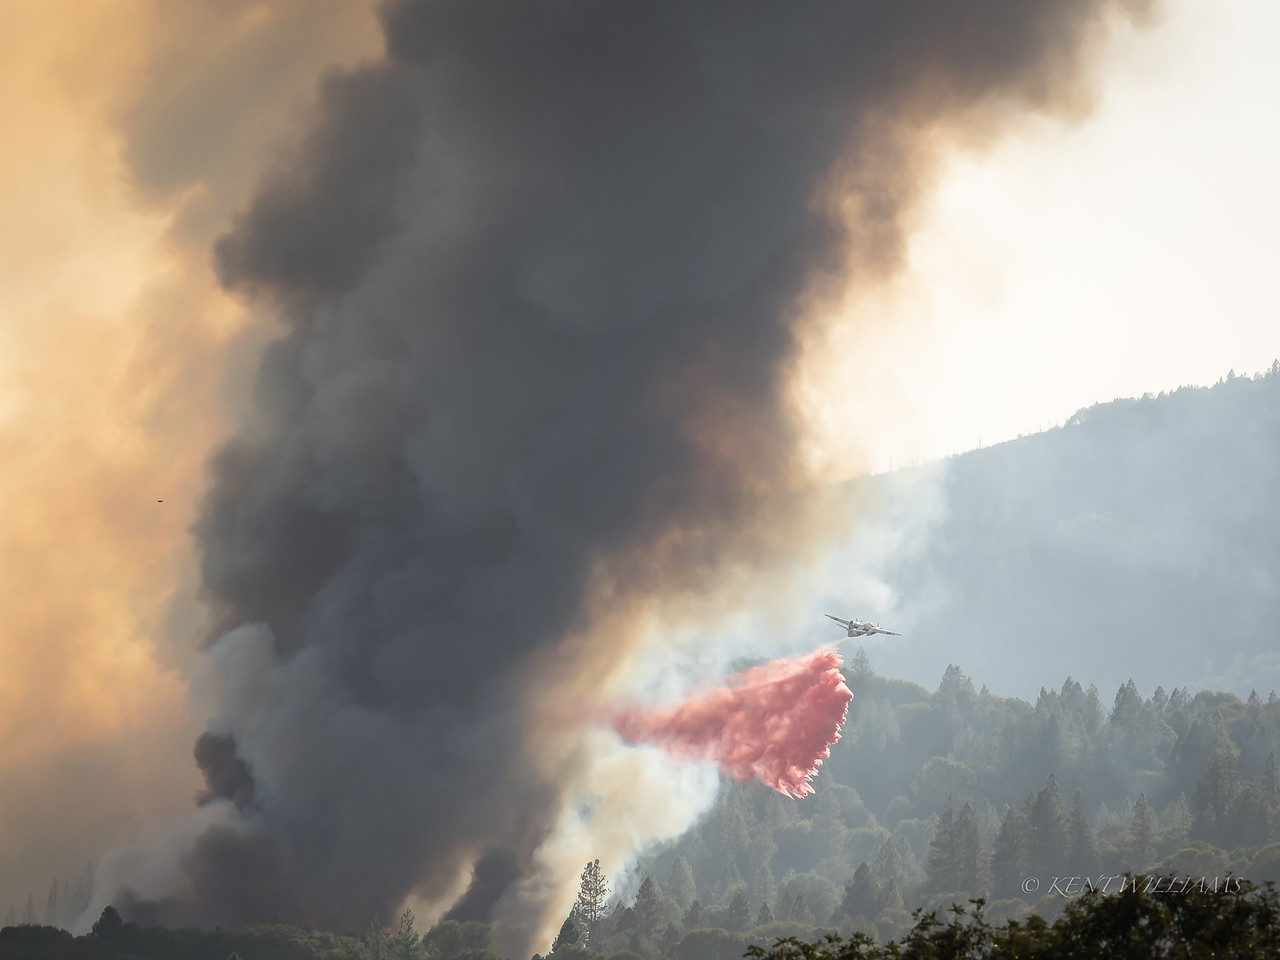 Dropping retardant